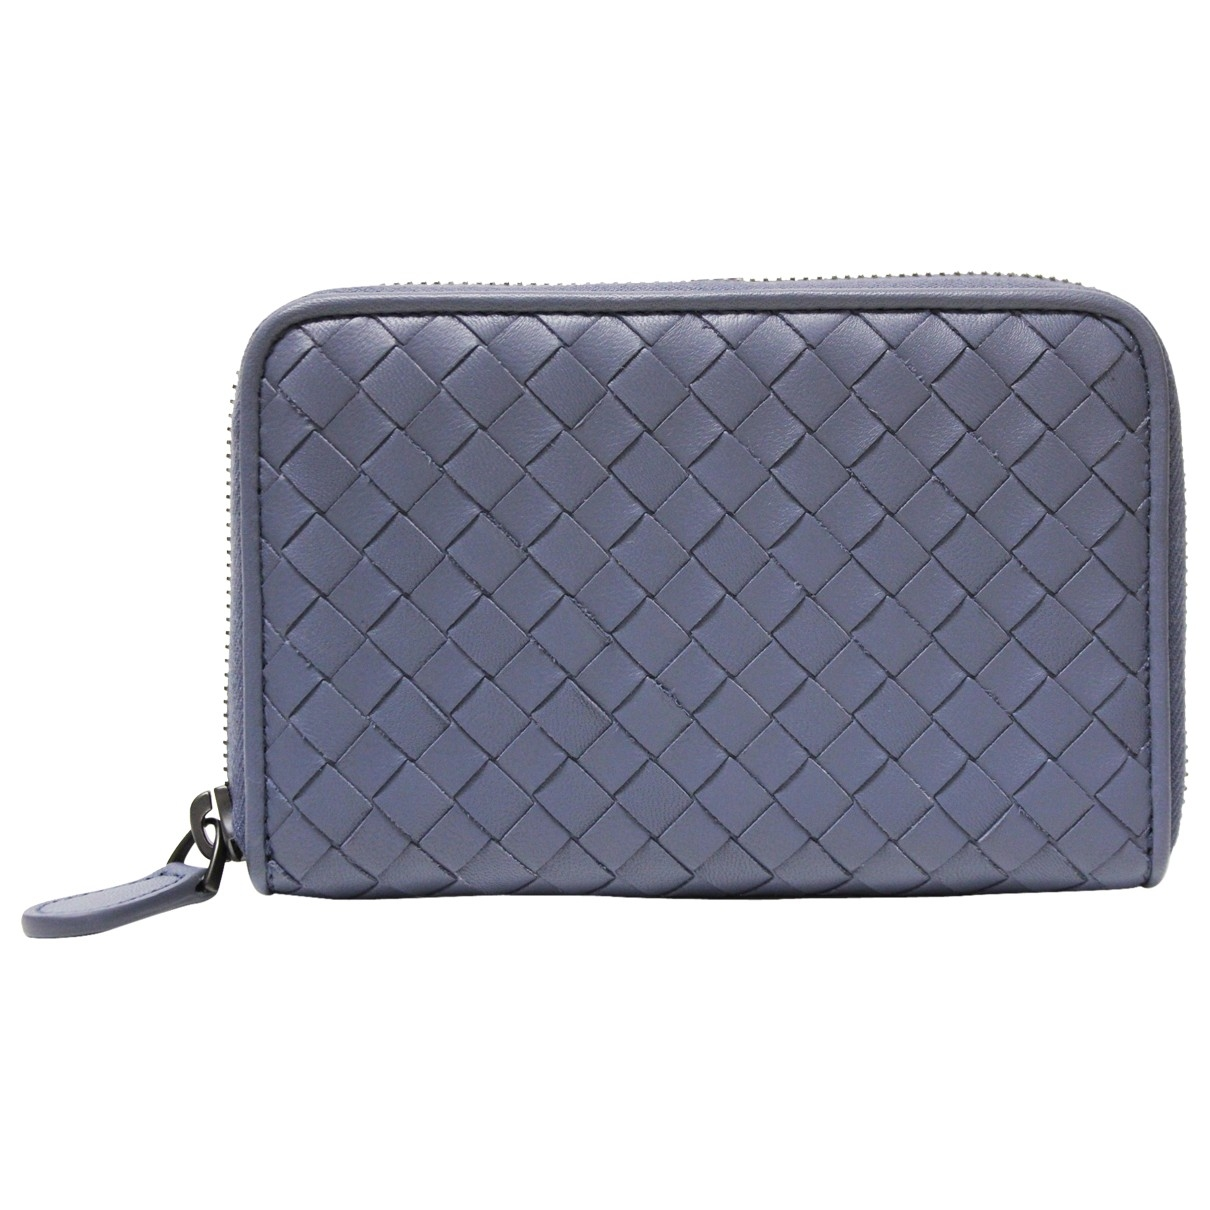 Bottega Veneta \N Blue Leather wallet for Women \N